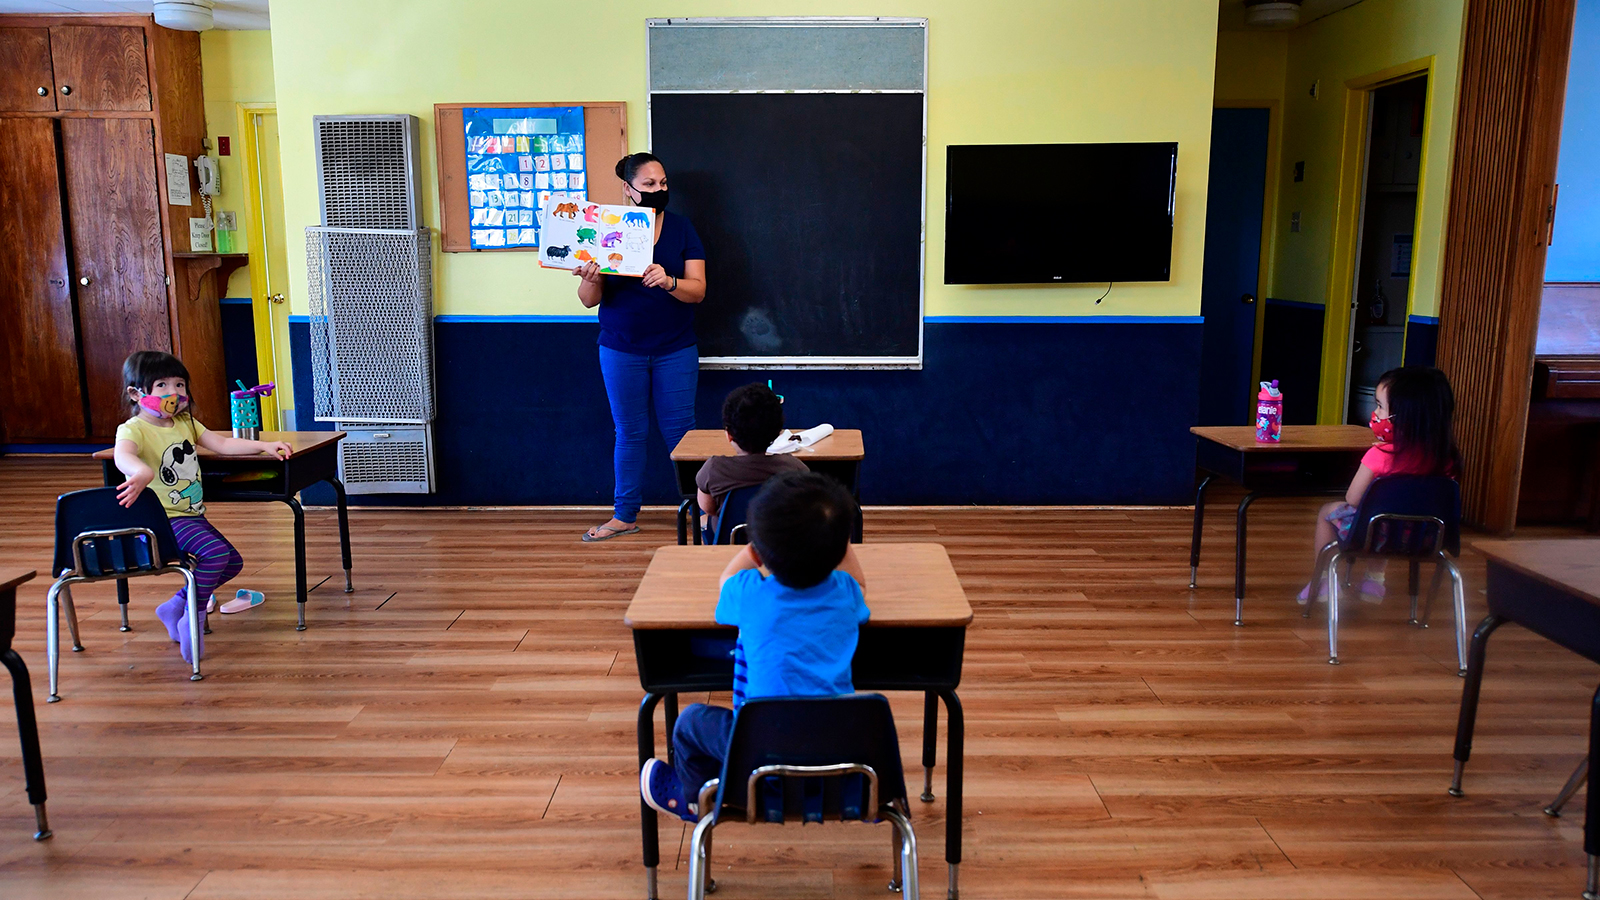 States struggle with reopening of schools